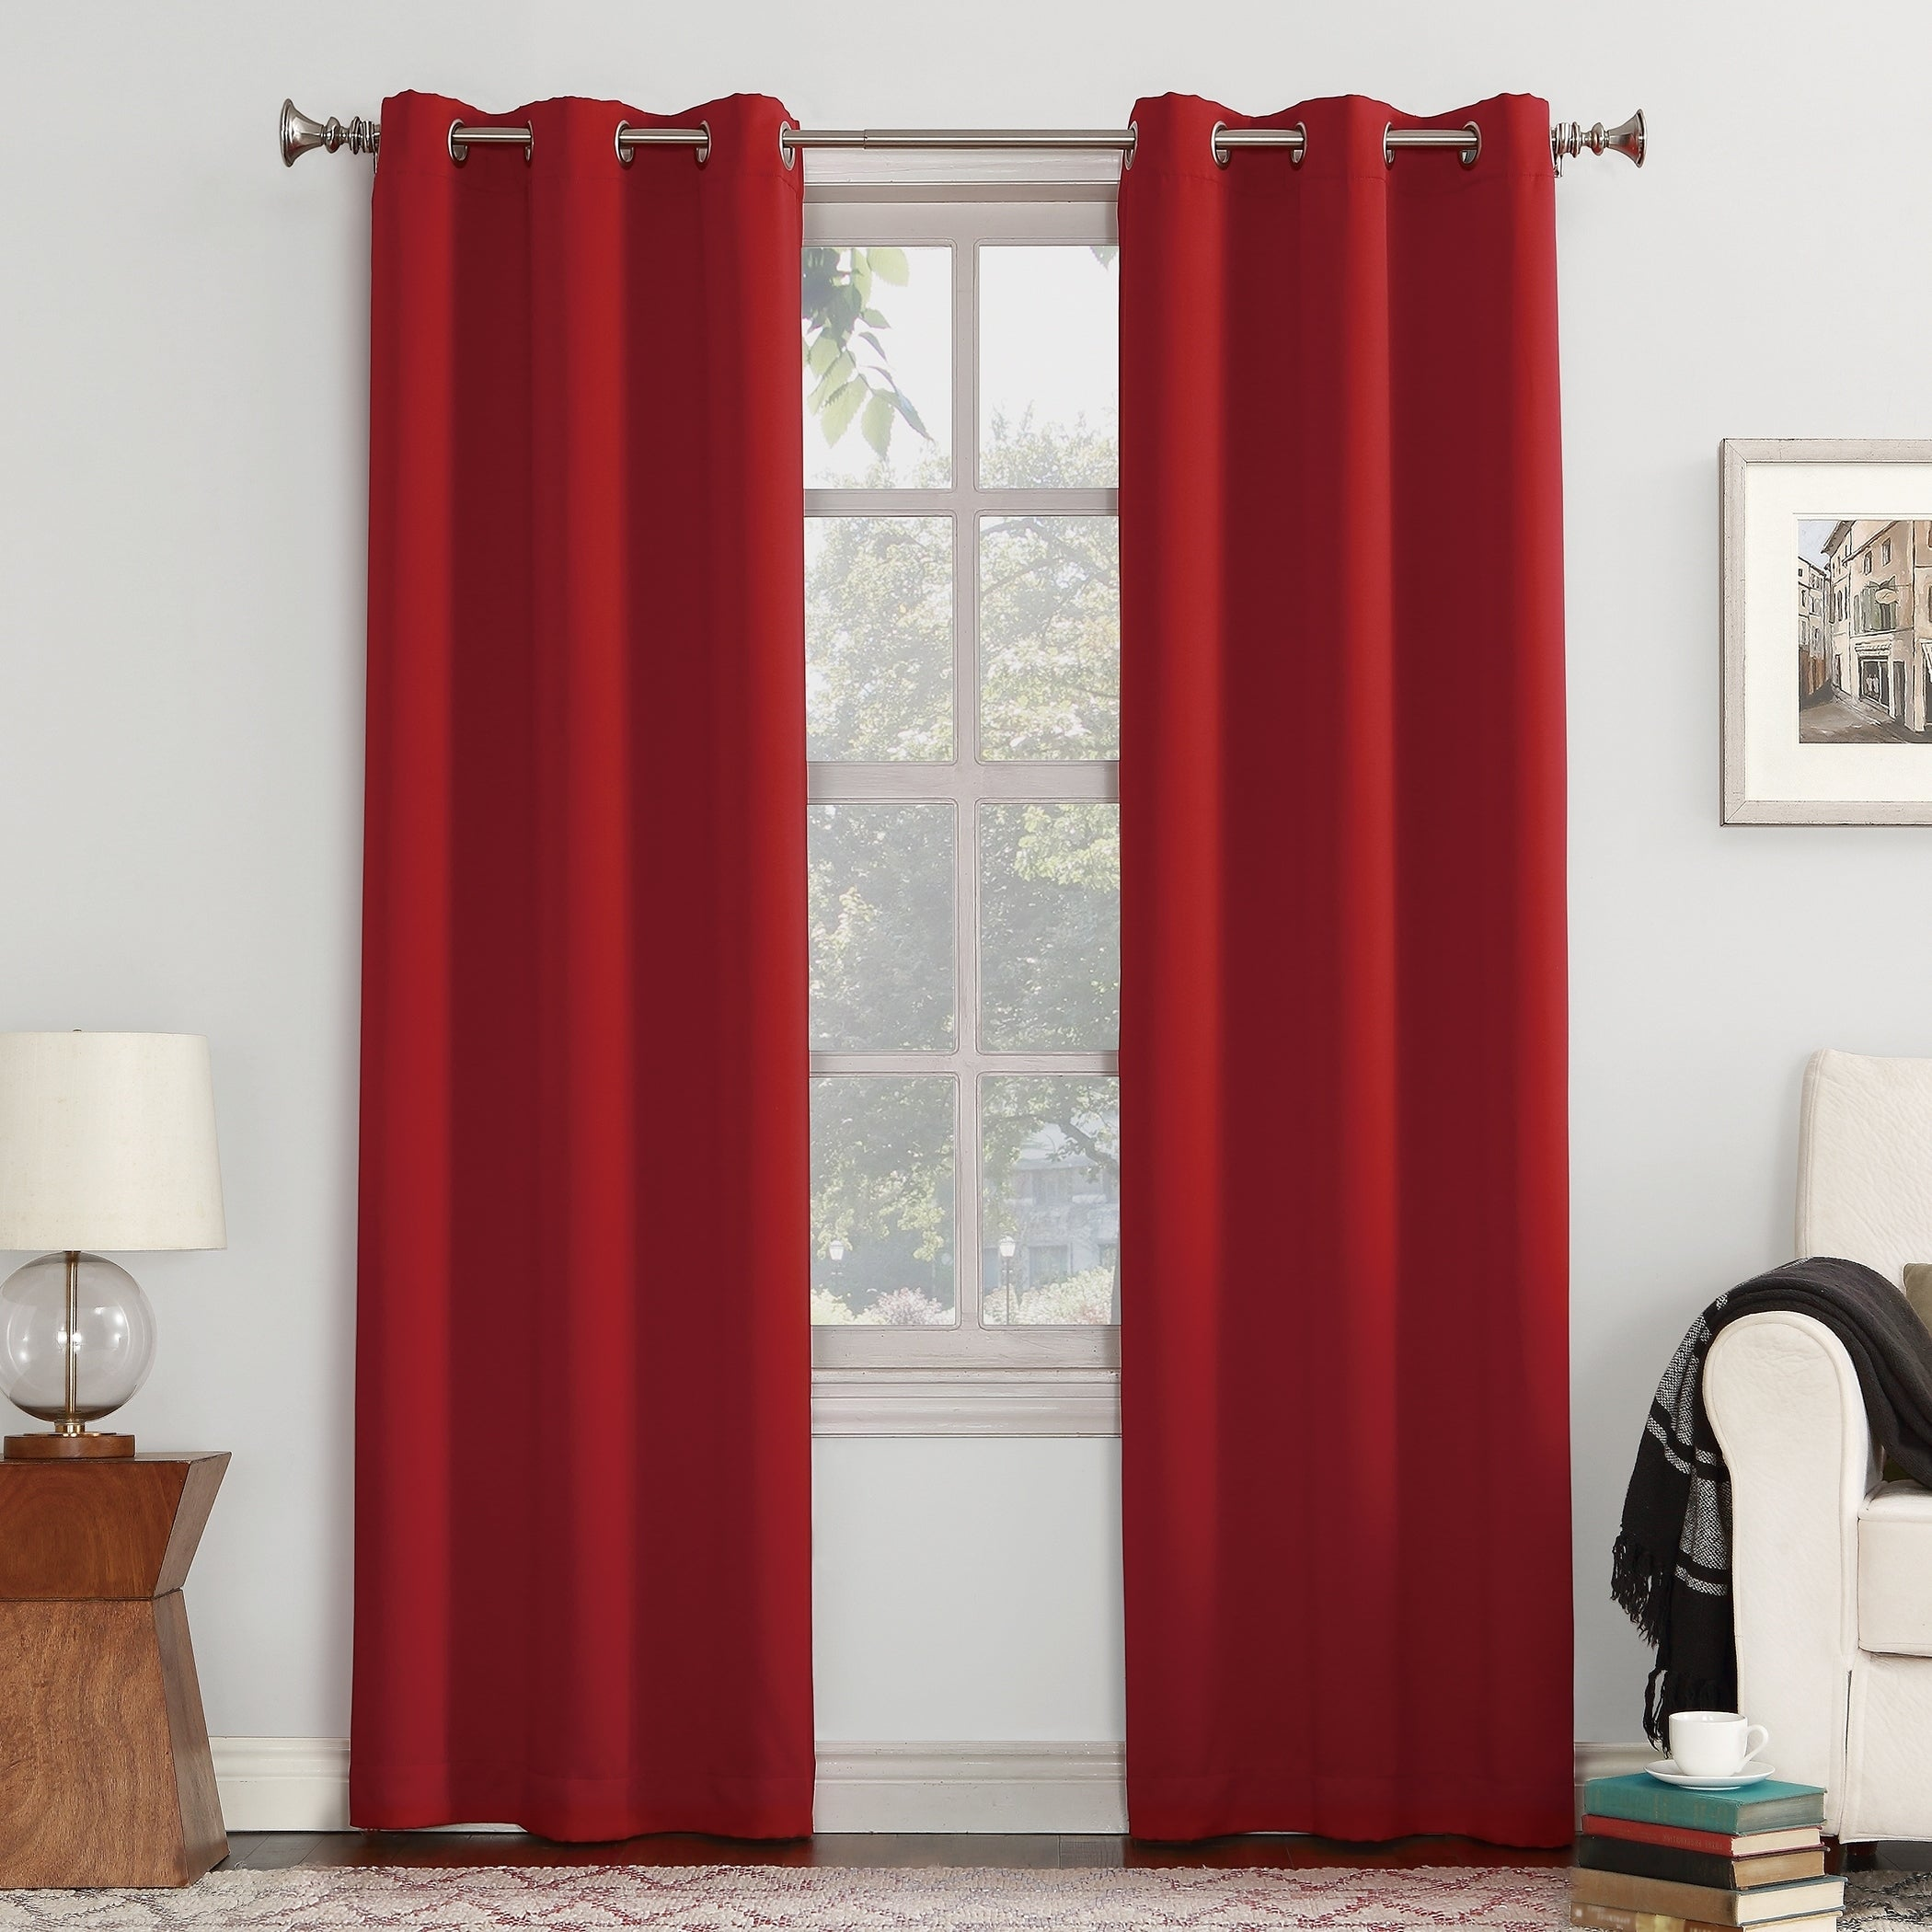 window panel p scalloped tailored blackstone curtains curtain treatment blackout x valance